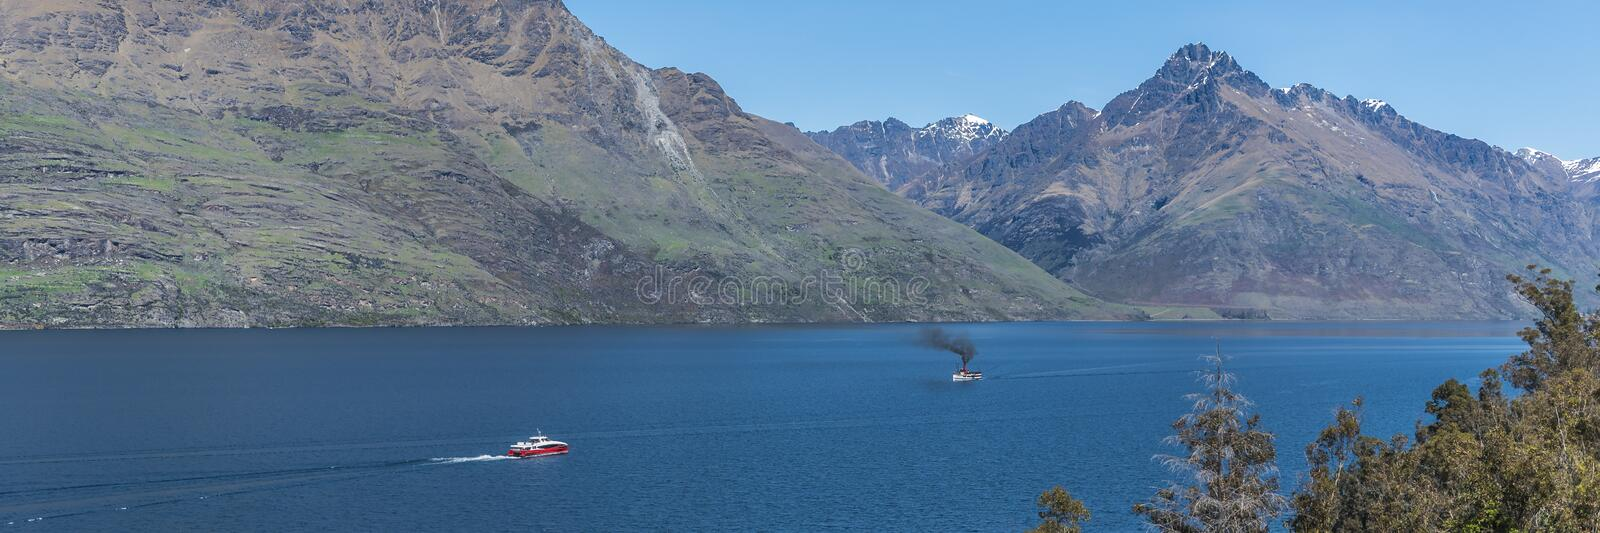 View of the landscape of the lake Wakatipu, Queenstown, New Zealand. Copy space for text.  stock image